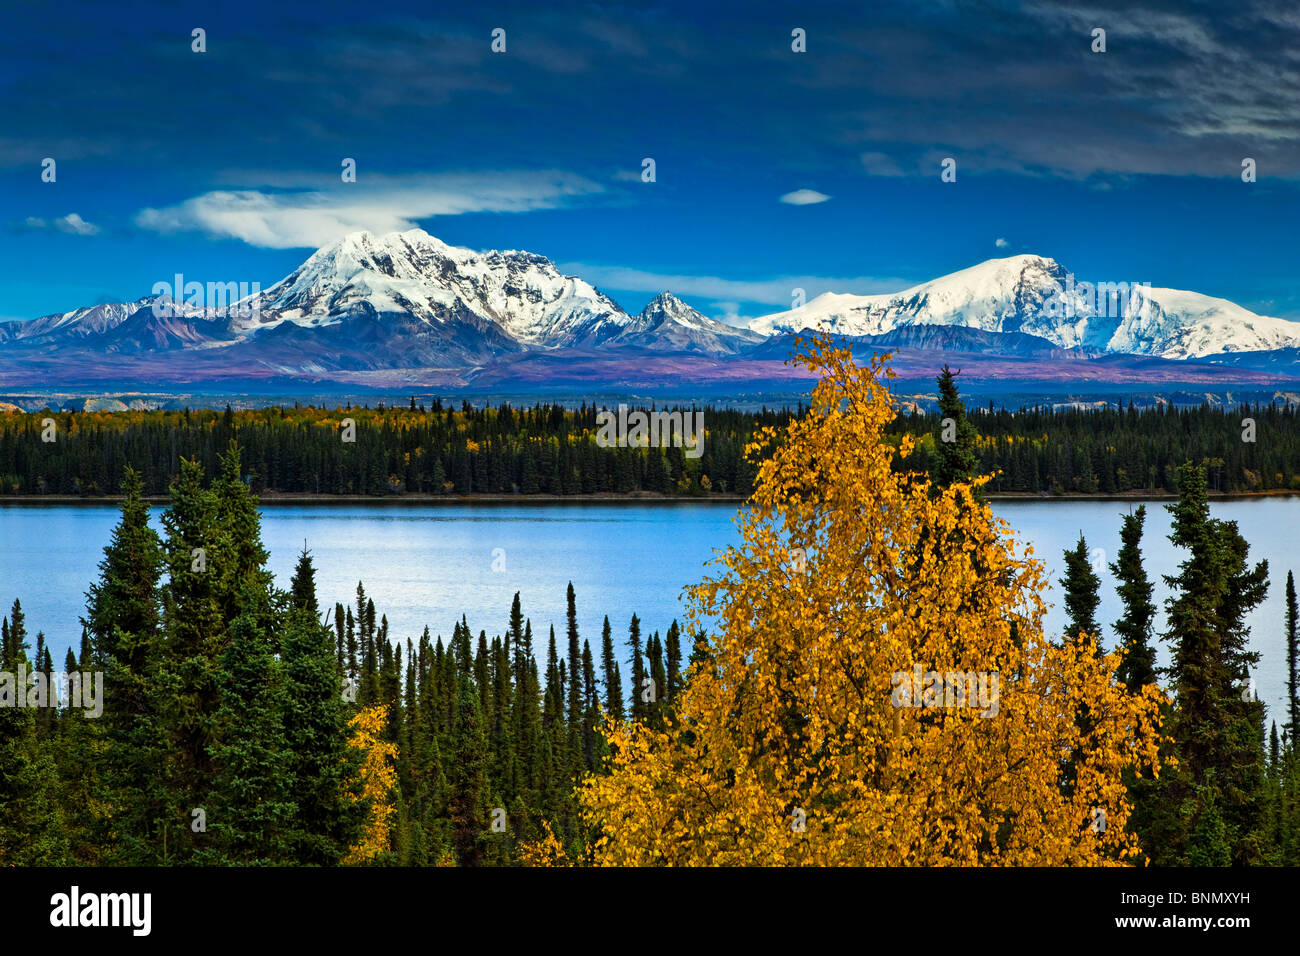 Scenic view of Mt. Sanford and Mt. Drum with Willow Lake in the foreground, Wrangell St. Elias National Park & - Stock Image